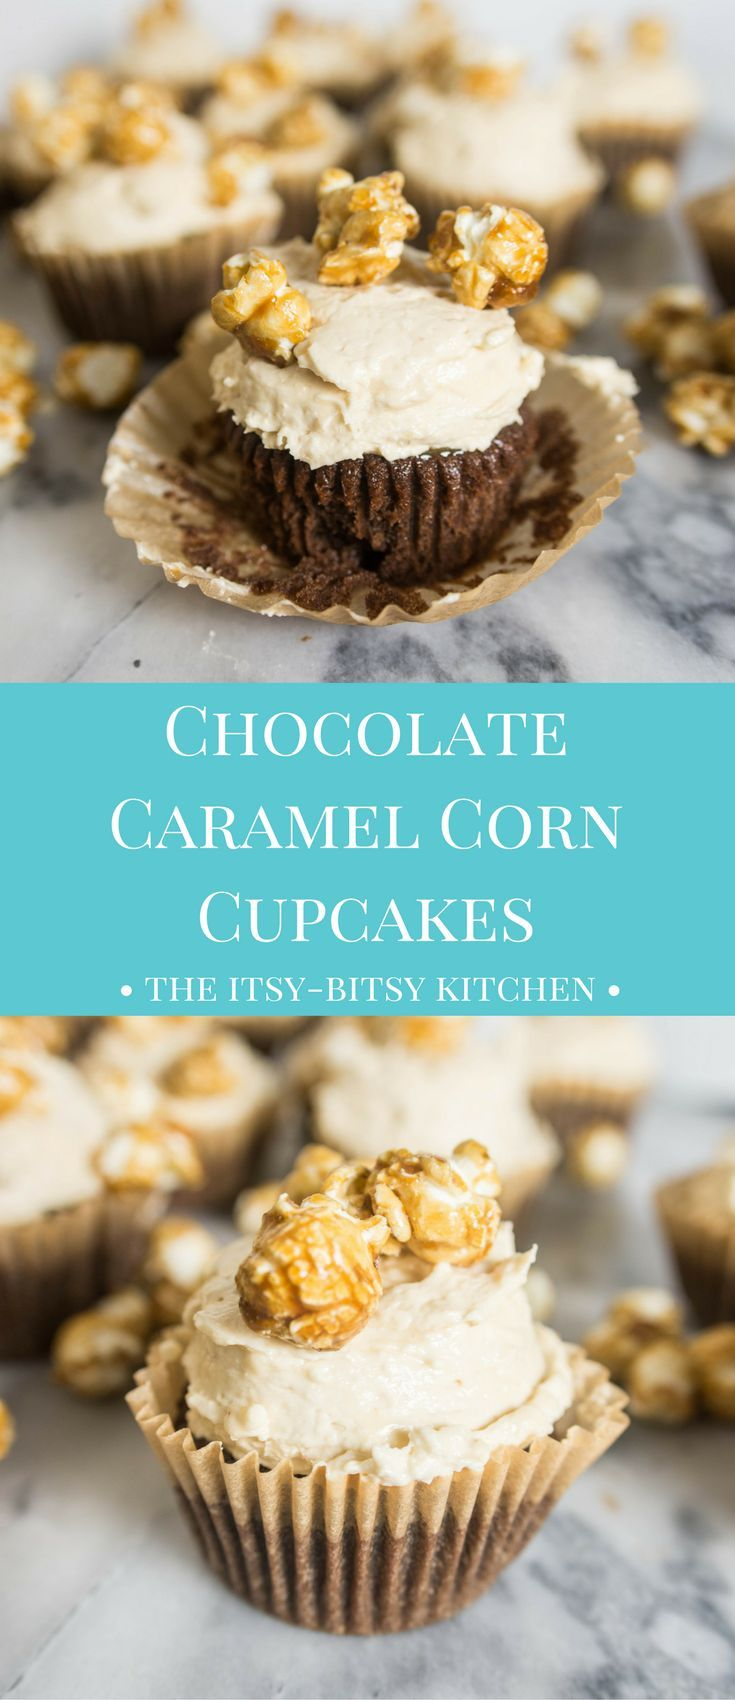 Chocolate caramel corn cupcakes are a chocolate cupcake filled with caramel and topped with caramel-y, popcorn-y frosting. This is one summer dessert that's sure to be a hit!